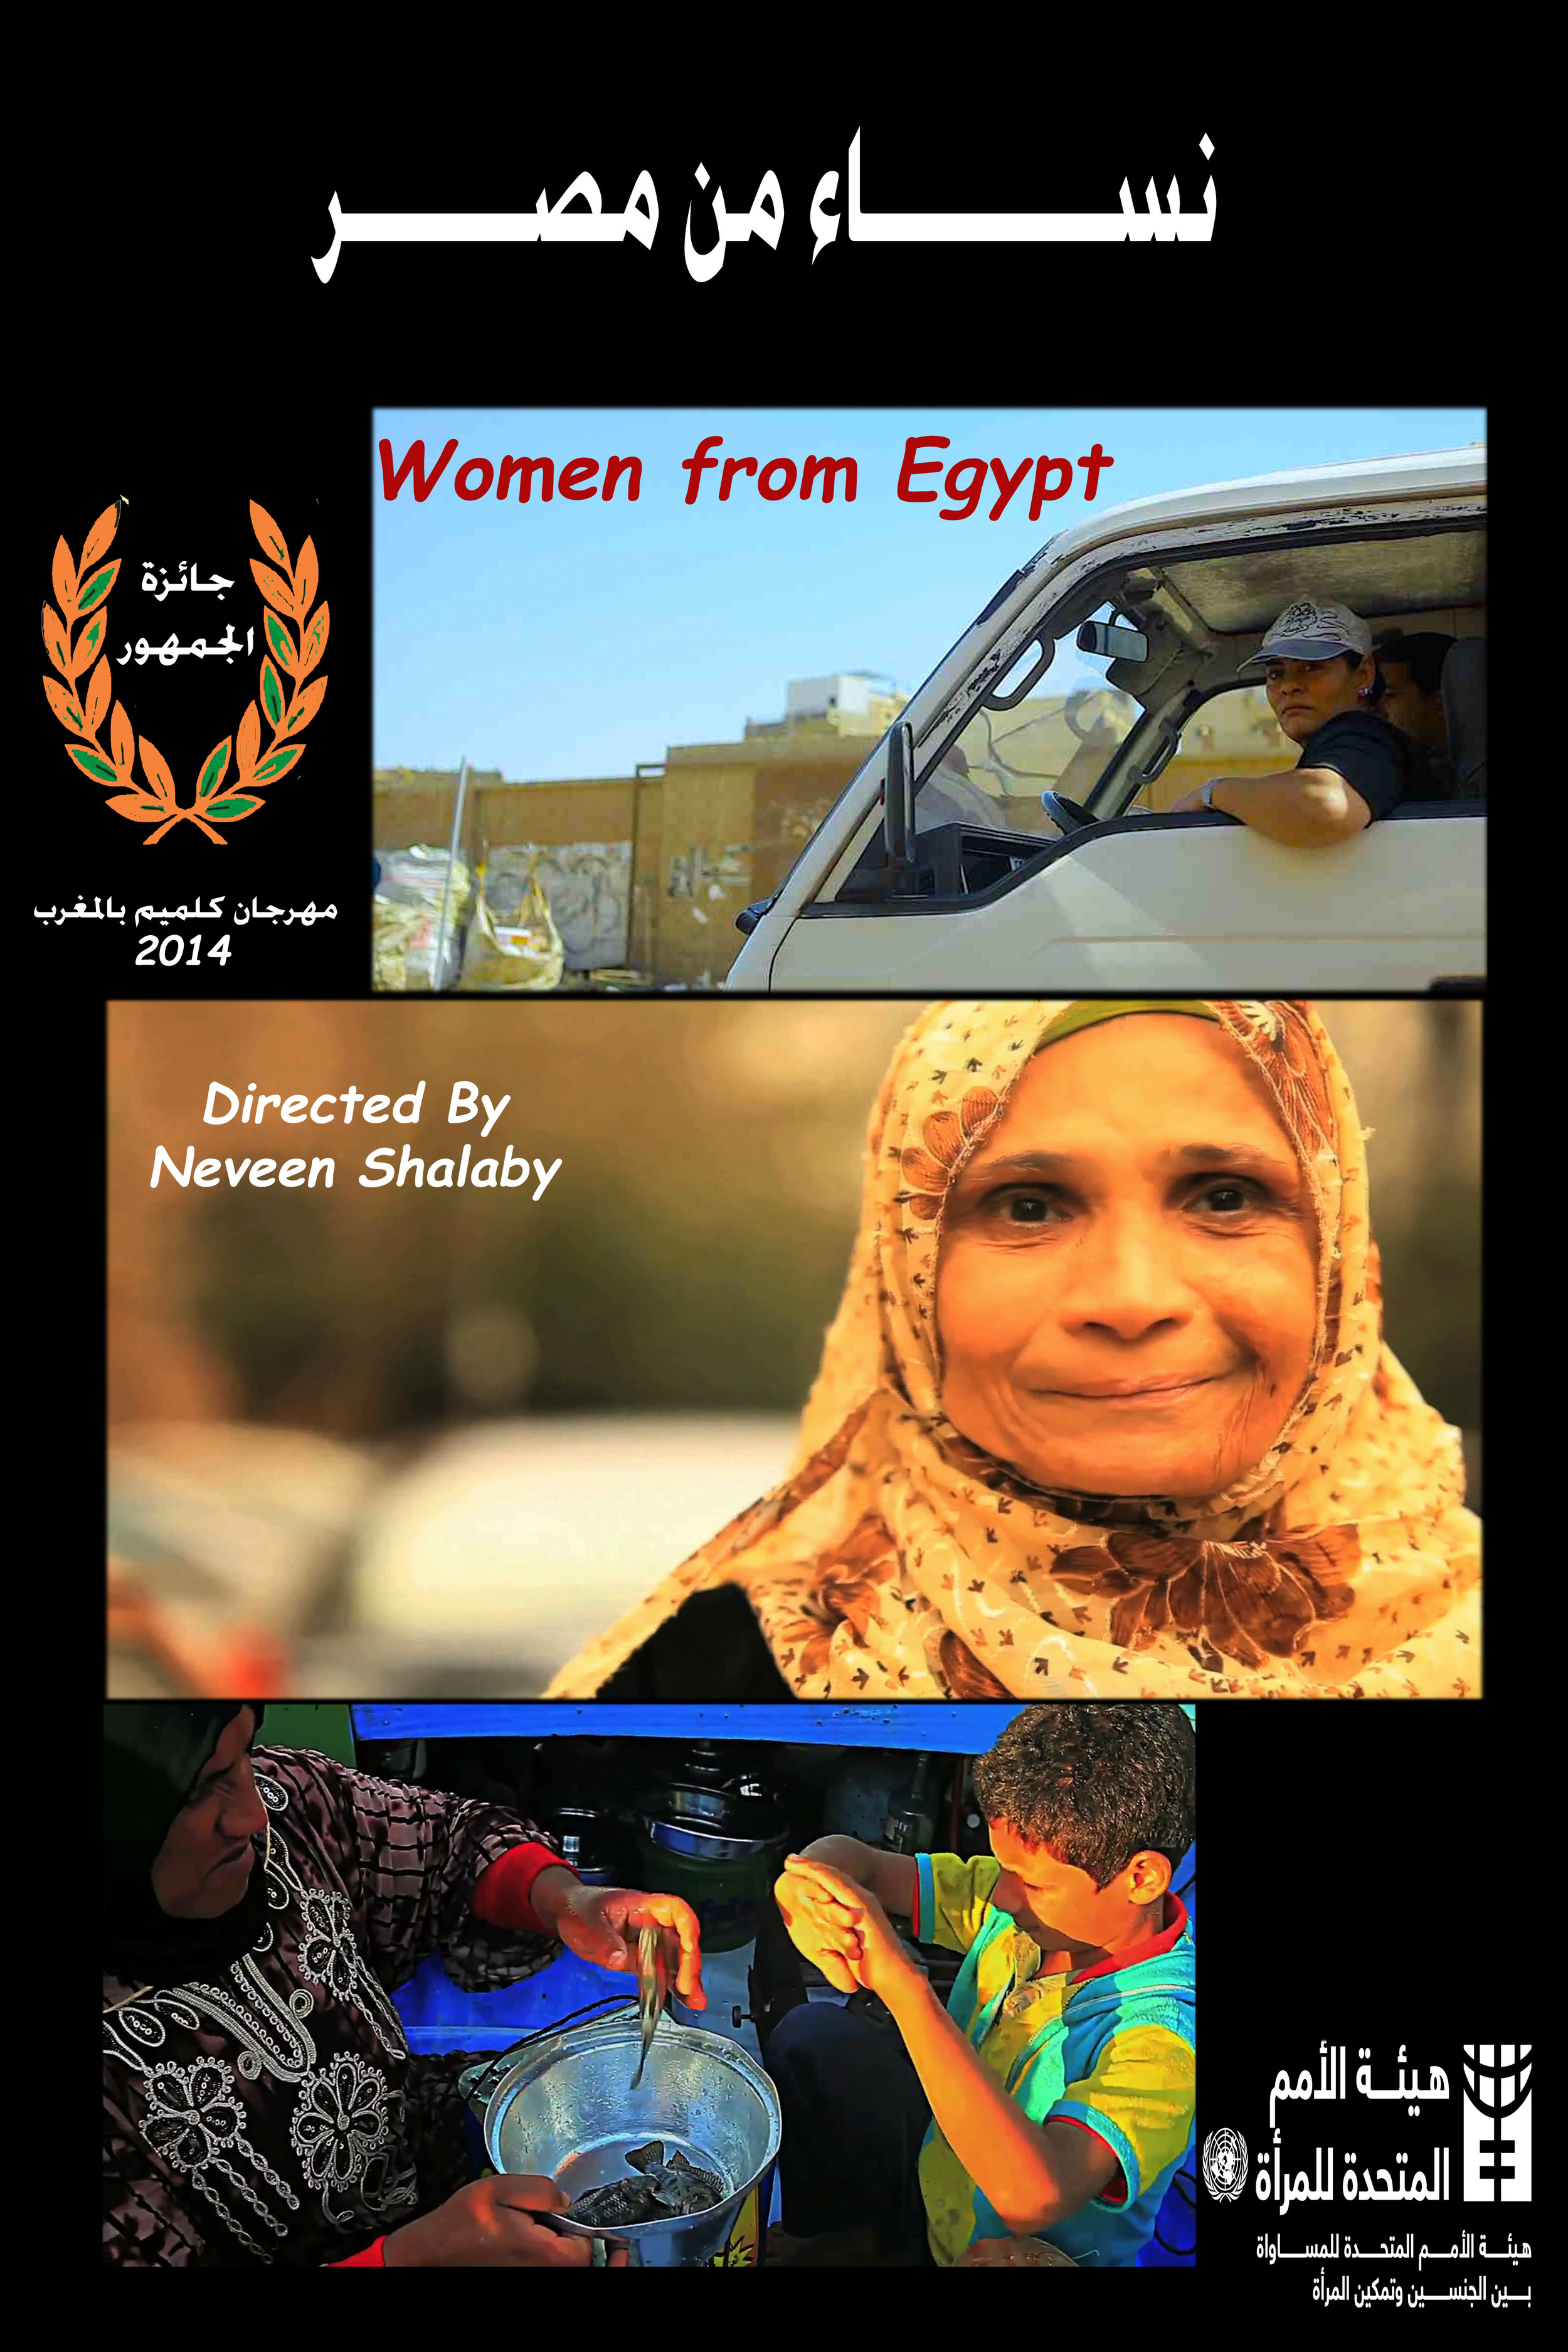 Women from Egypt     Three women from Egypt hold jobs that are usually occupied by men. They are struggling to provide for their children under difficult financial circumstances...  Read More